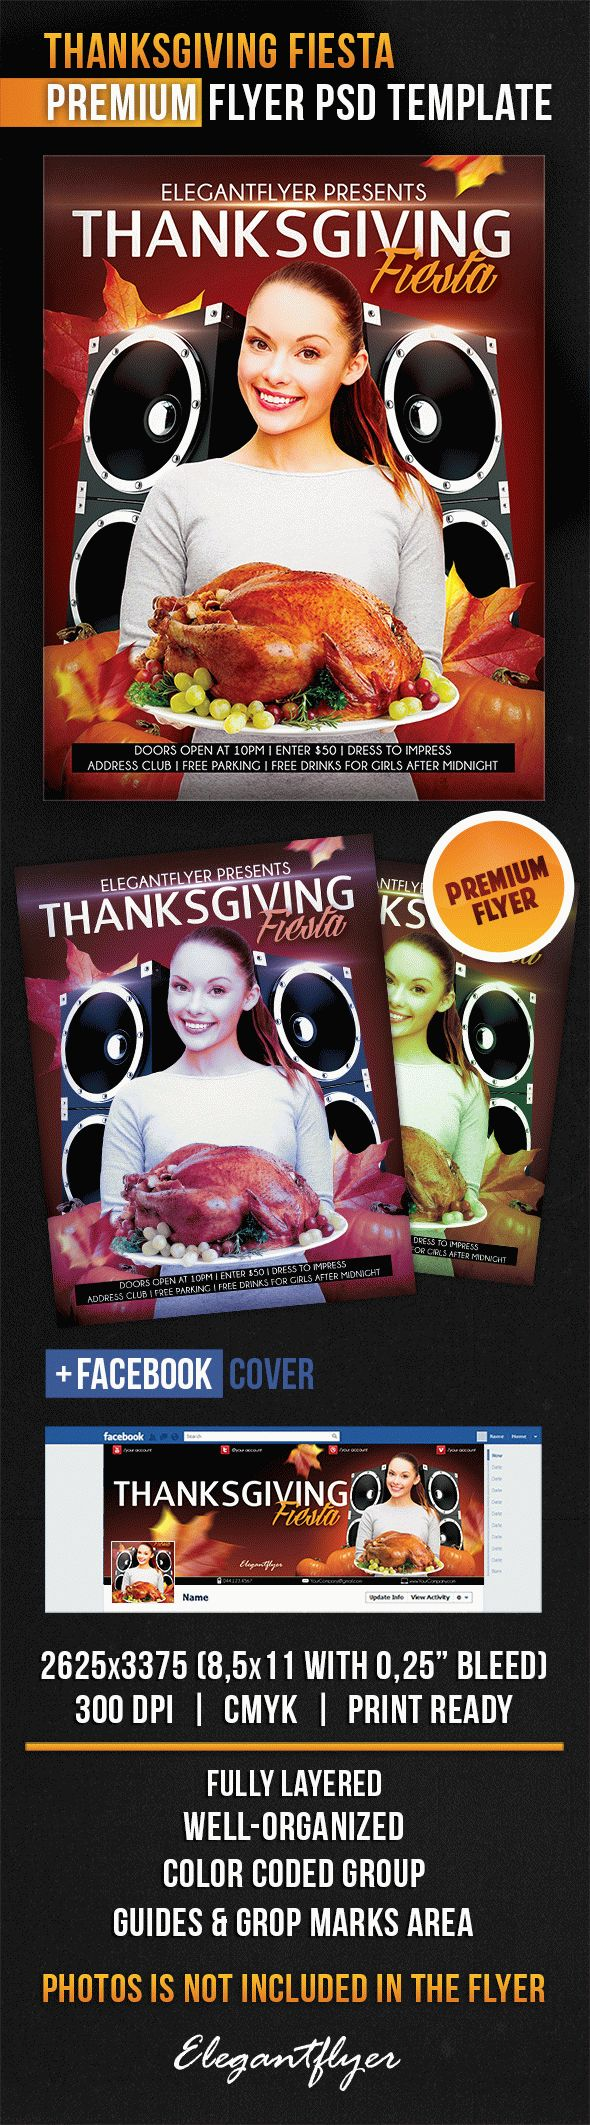 Thanksgiving Fiesta – Flyer PSD Template + Facebook Cover